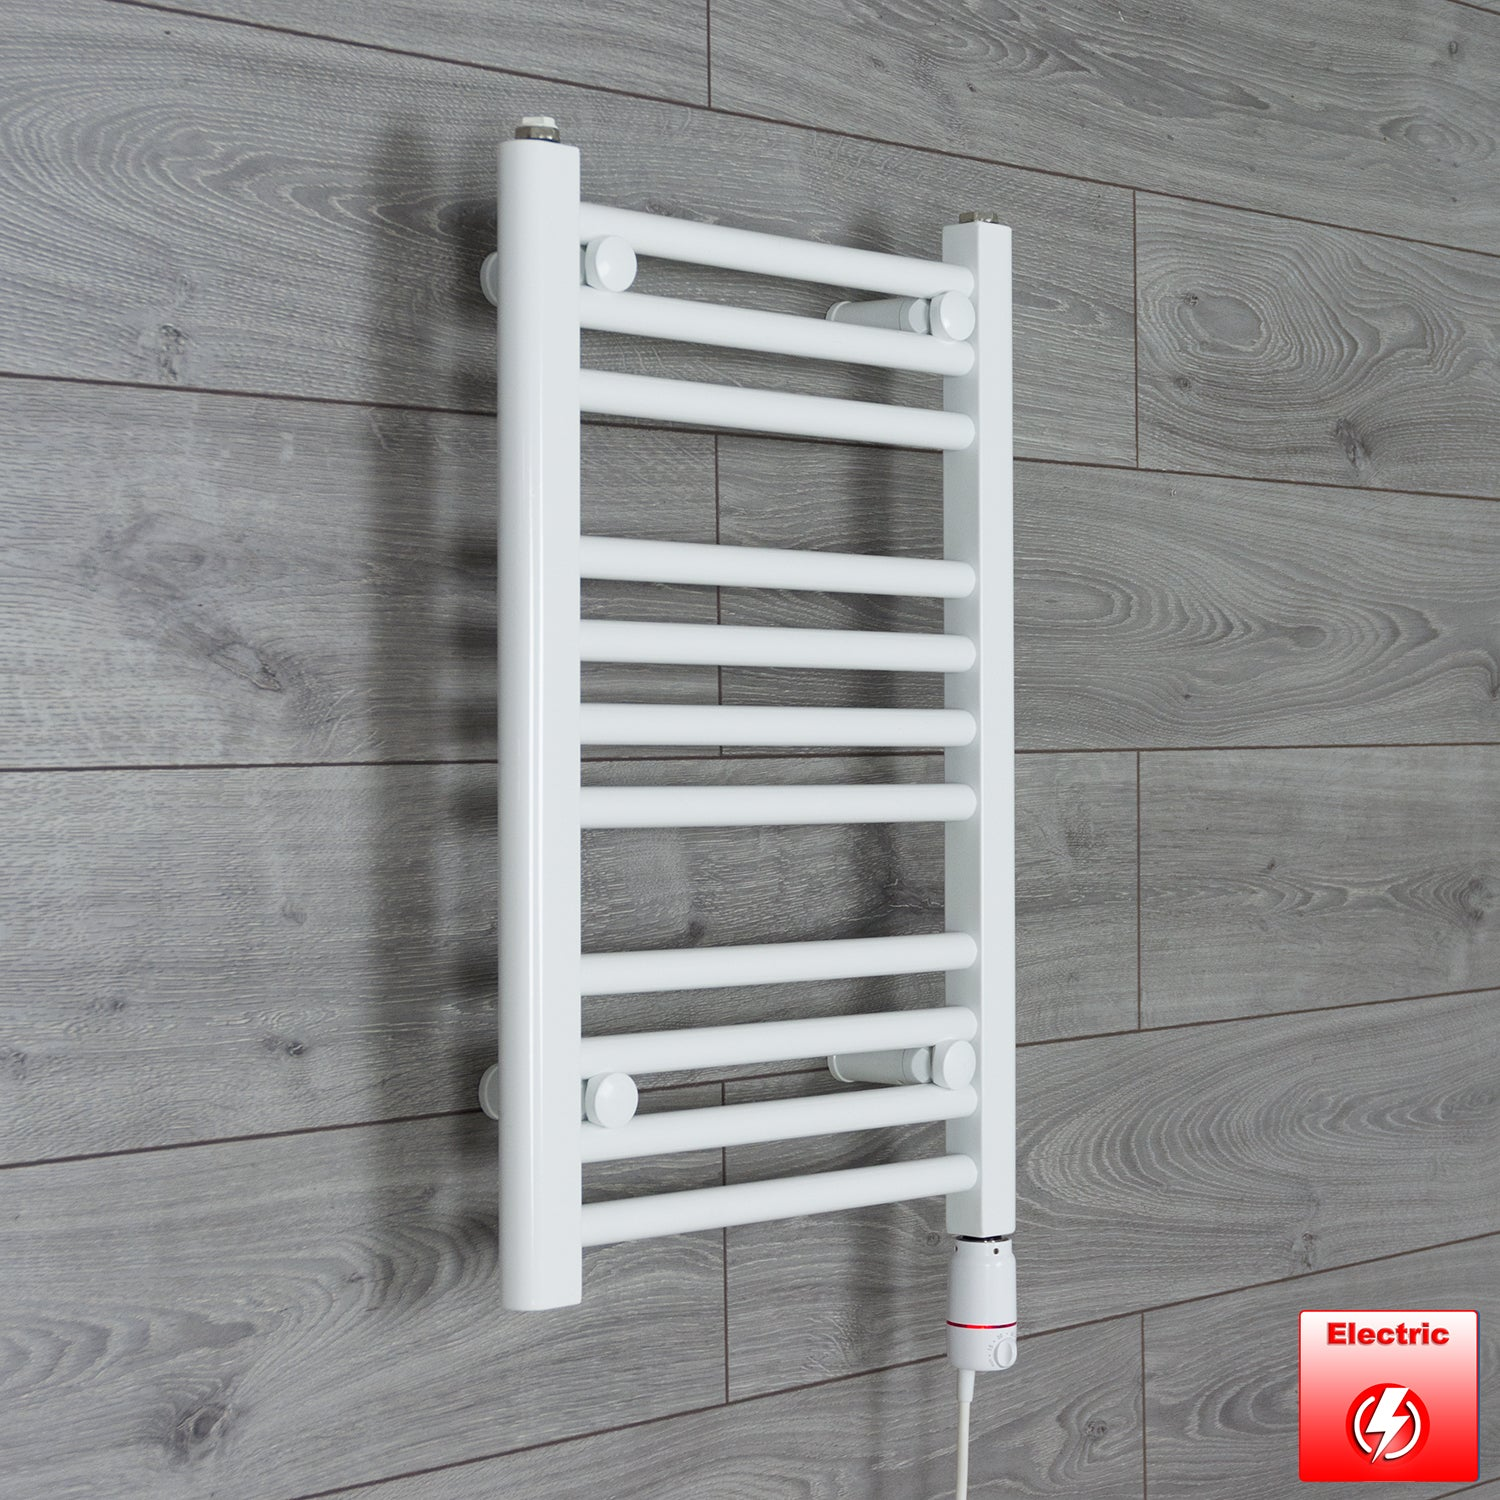 500mm Wide 600mm High Pre-Filled White Electric Towel Rail Radiator With Thermostatic GT Element